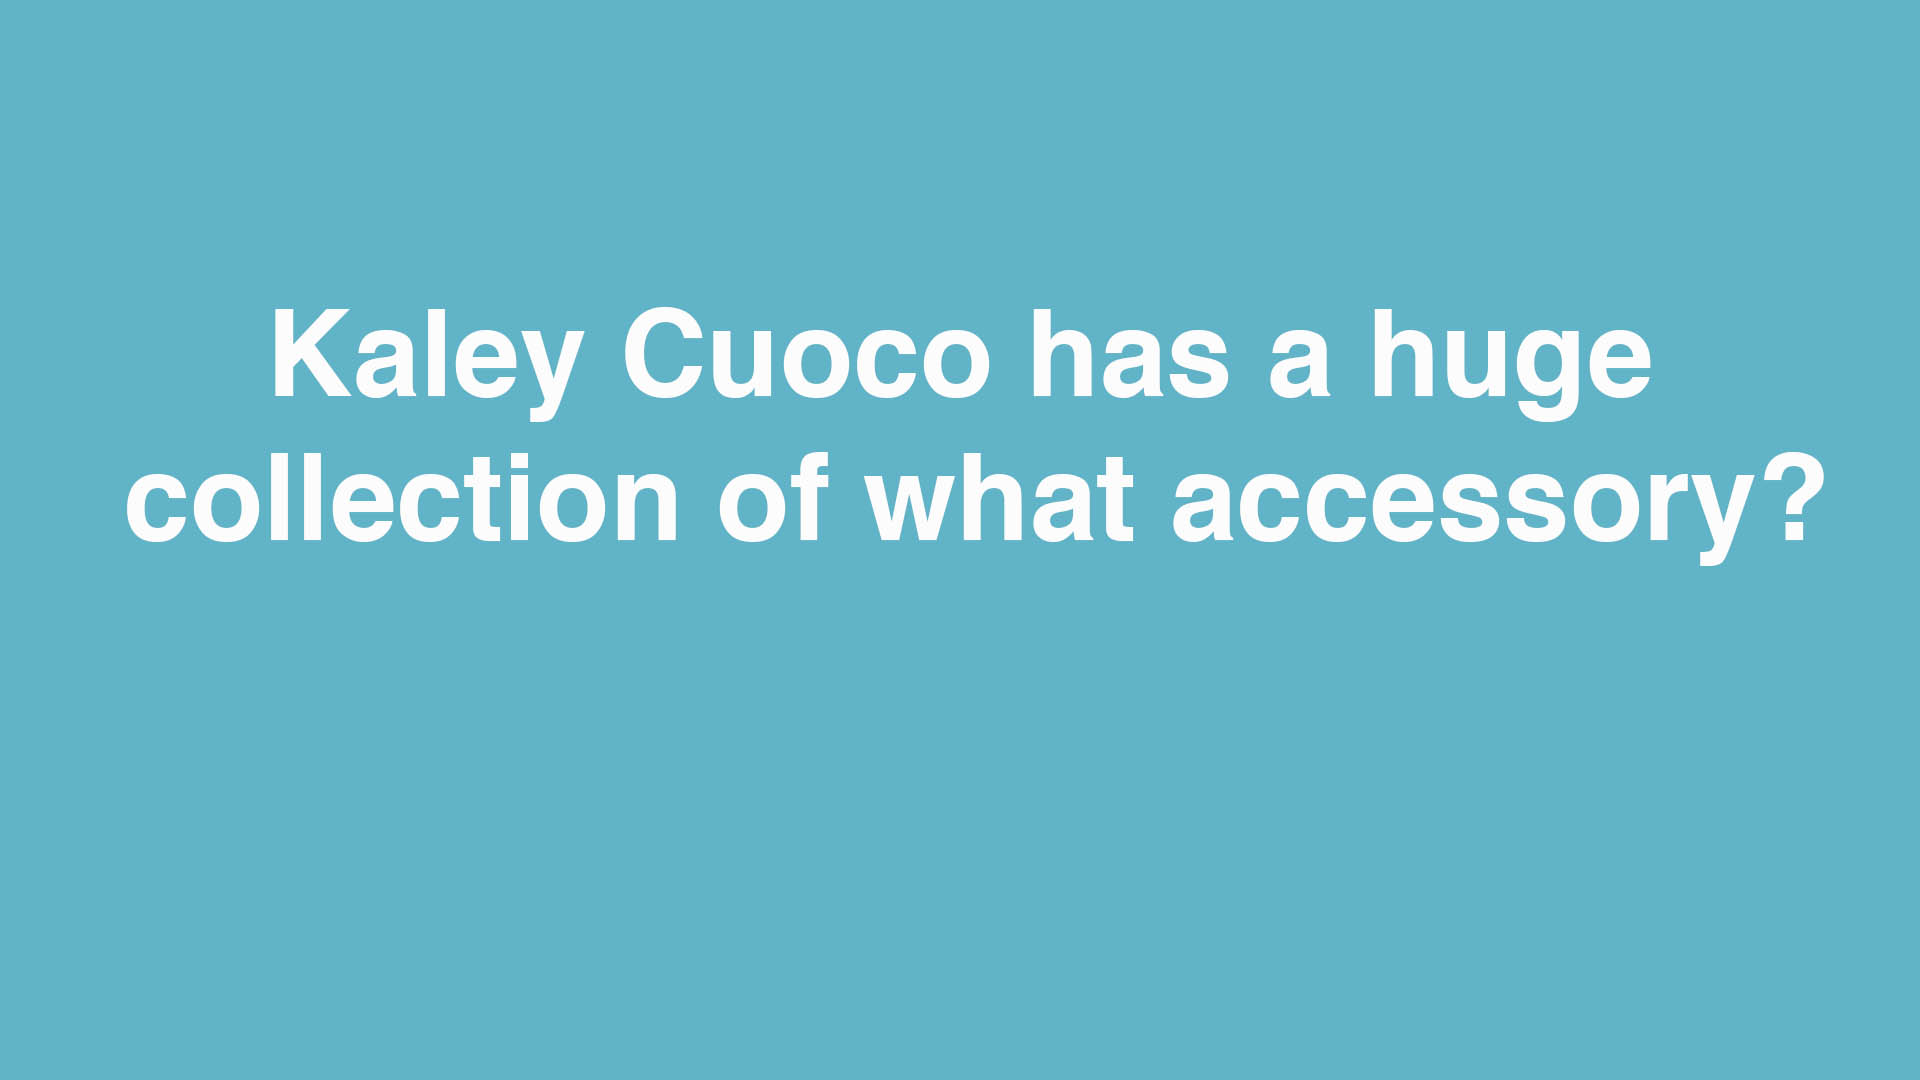 Kaley Cuoco has a huge collection of what accessory?